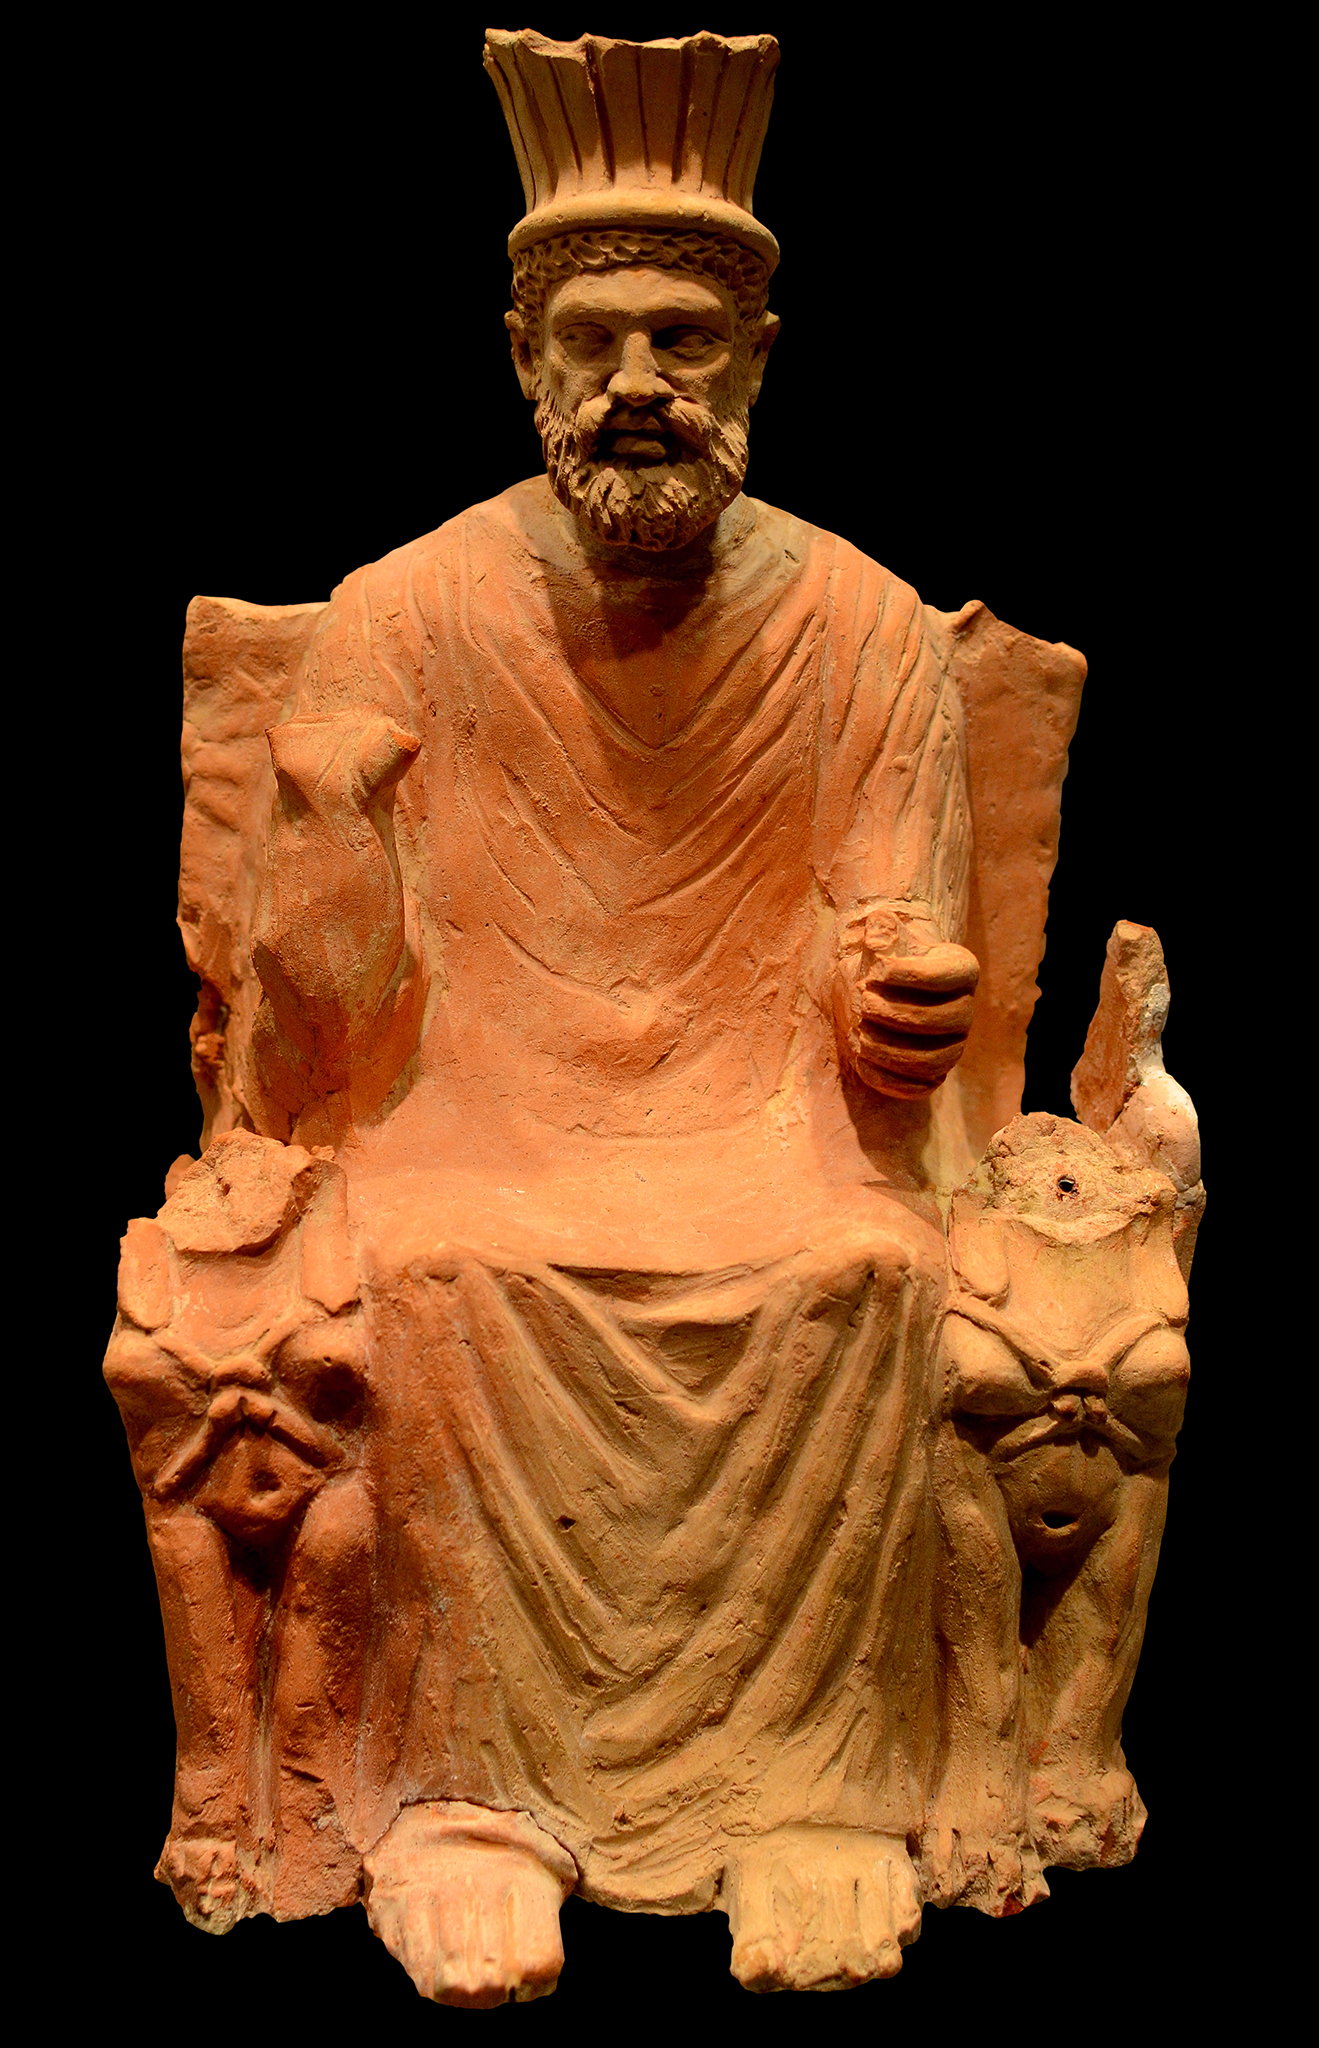 Baal Hammon on a throne terracotta statue